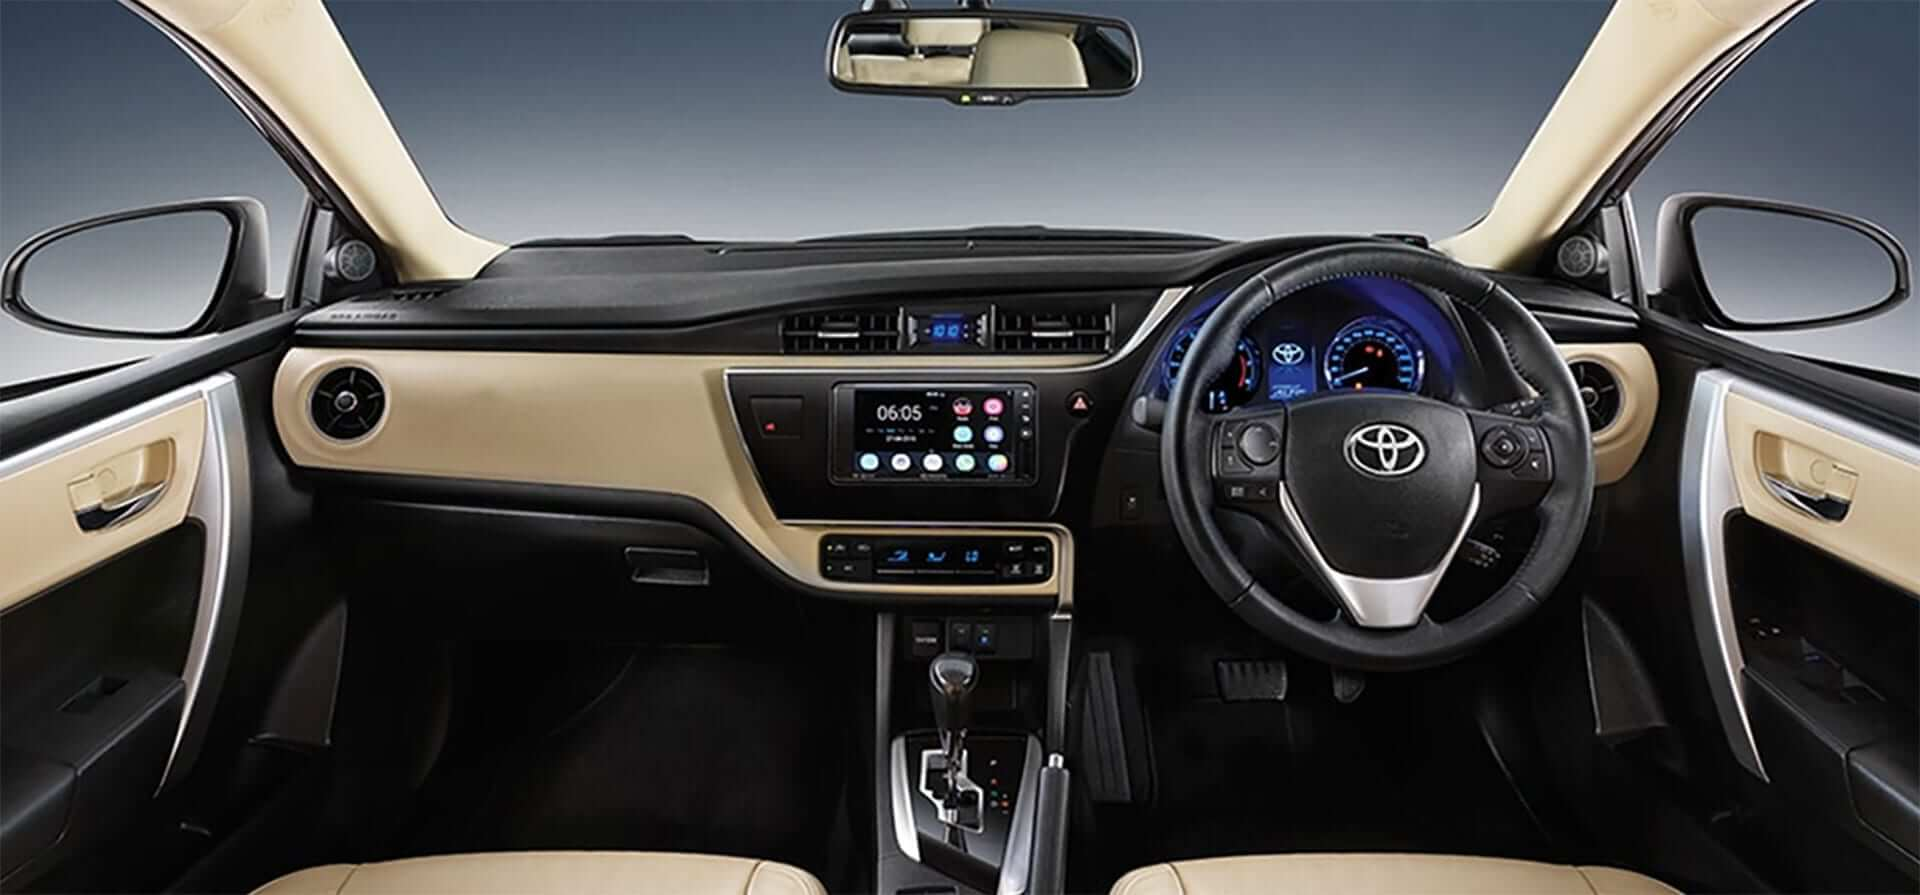 toyota altis manual 2015 model price in pakistan